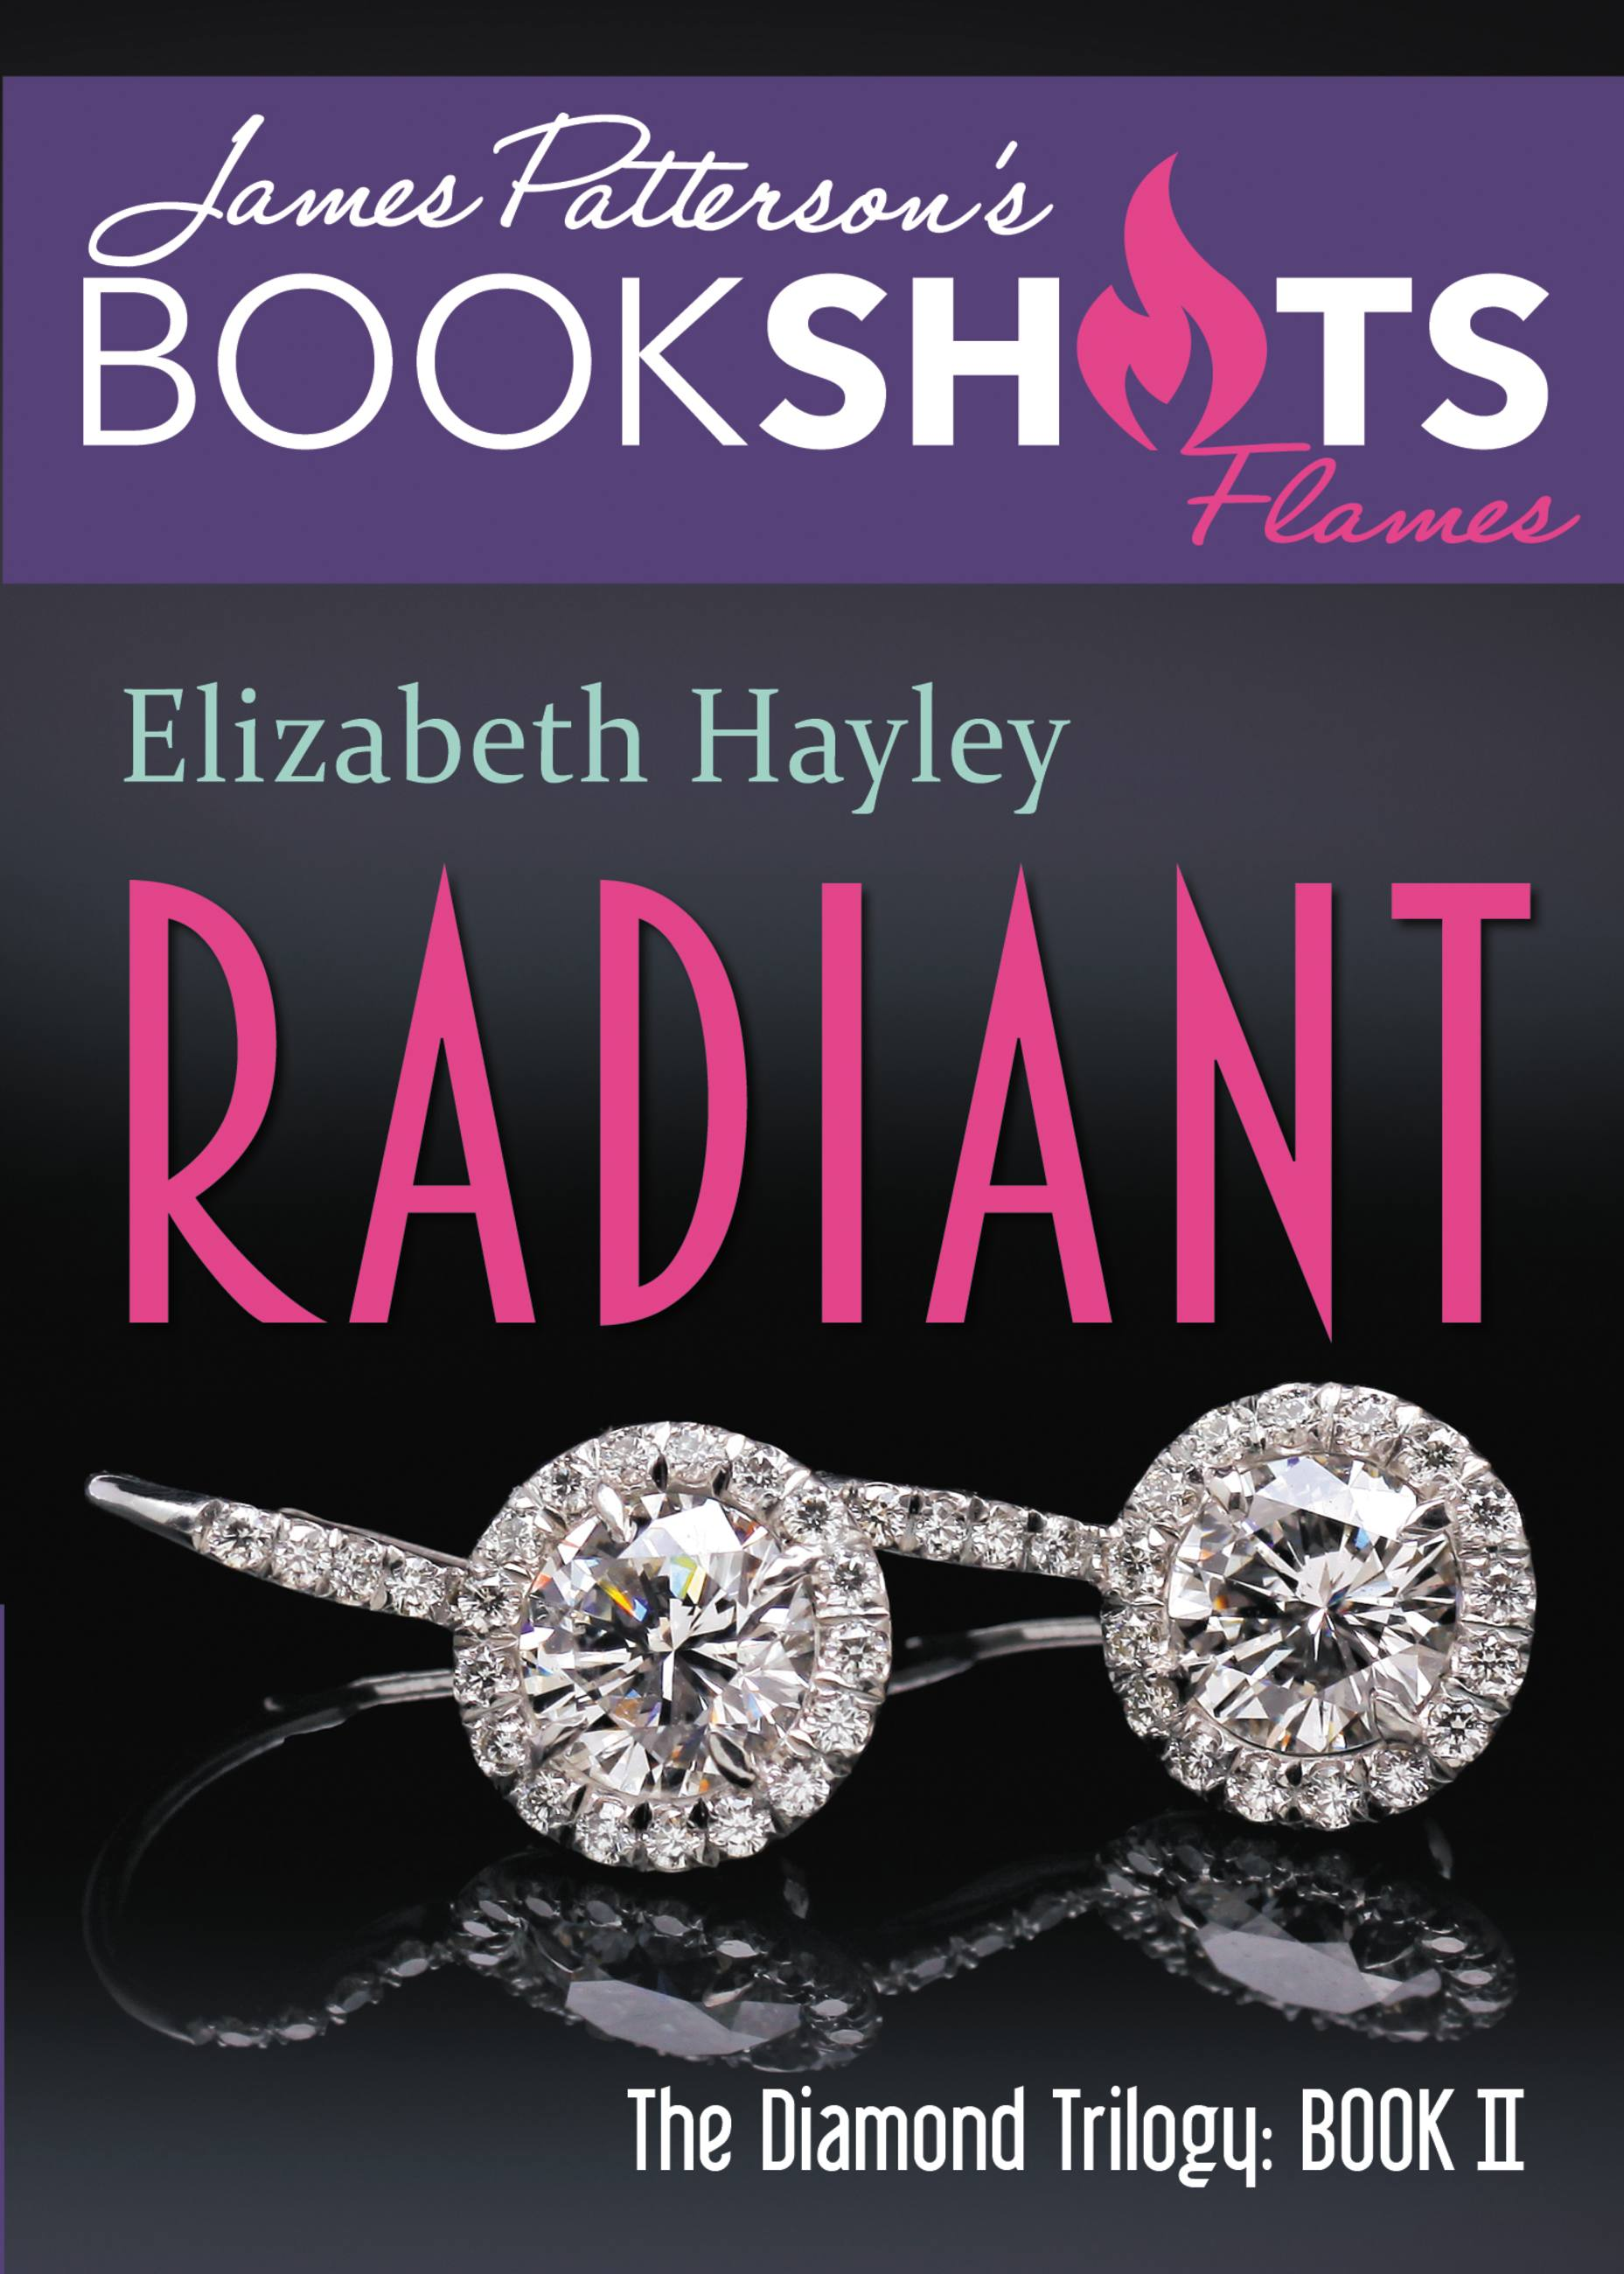 Radiant The Diamond Trilogy, Book II